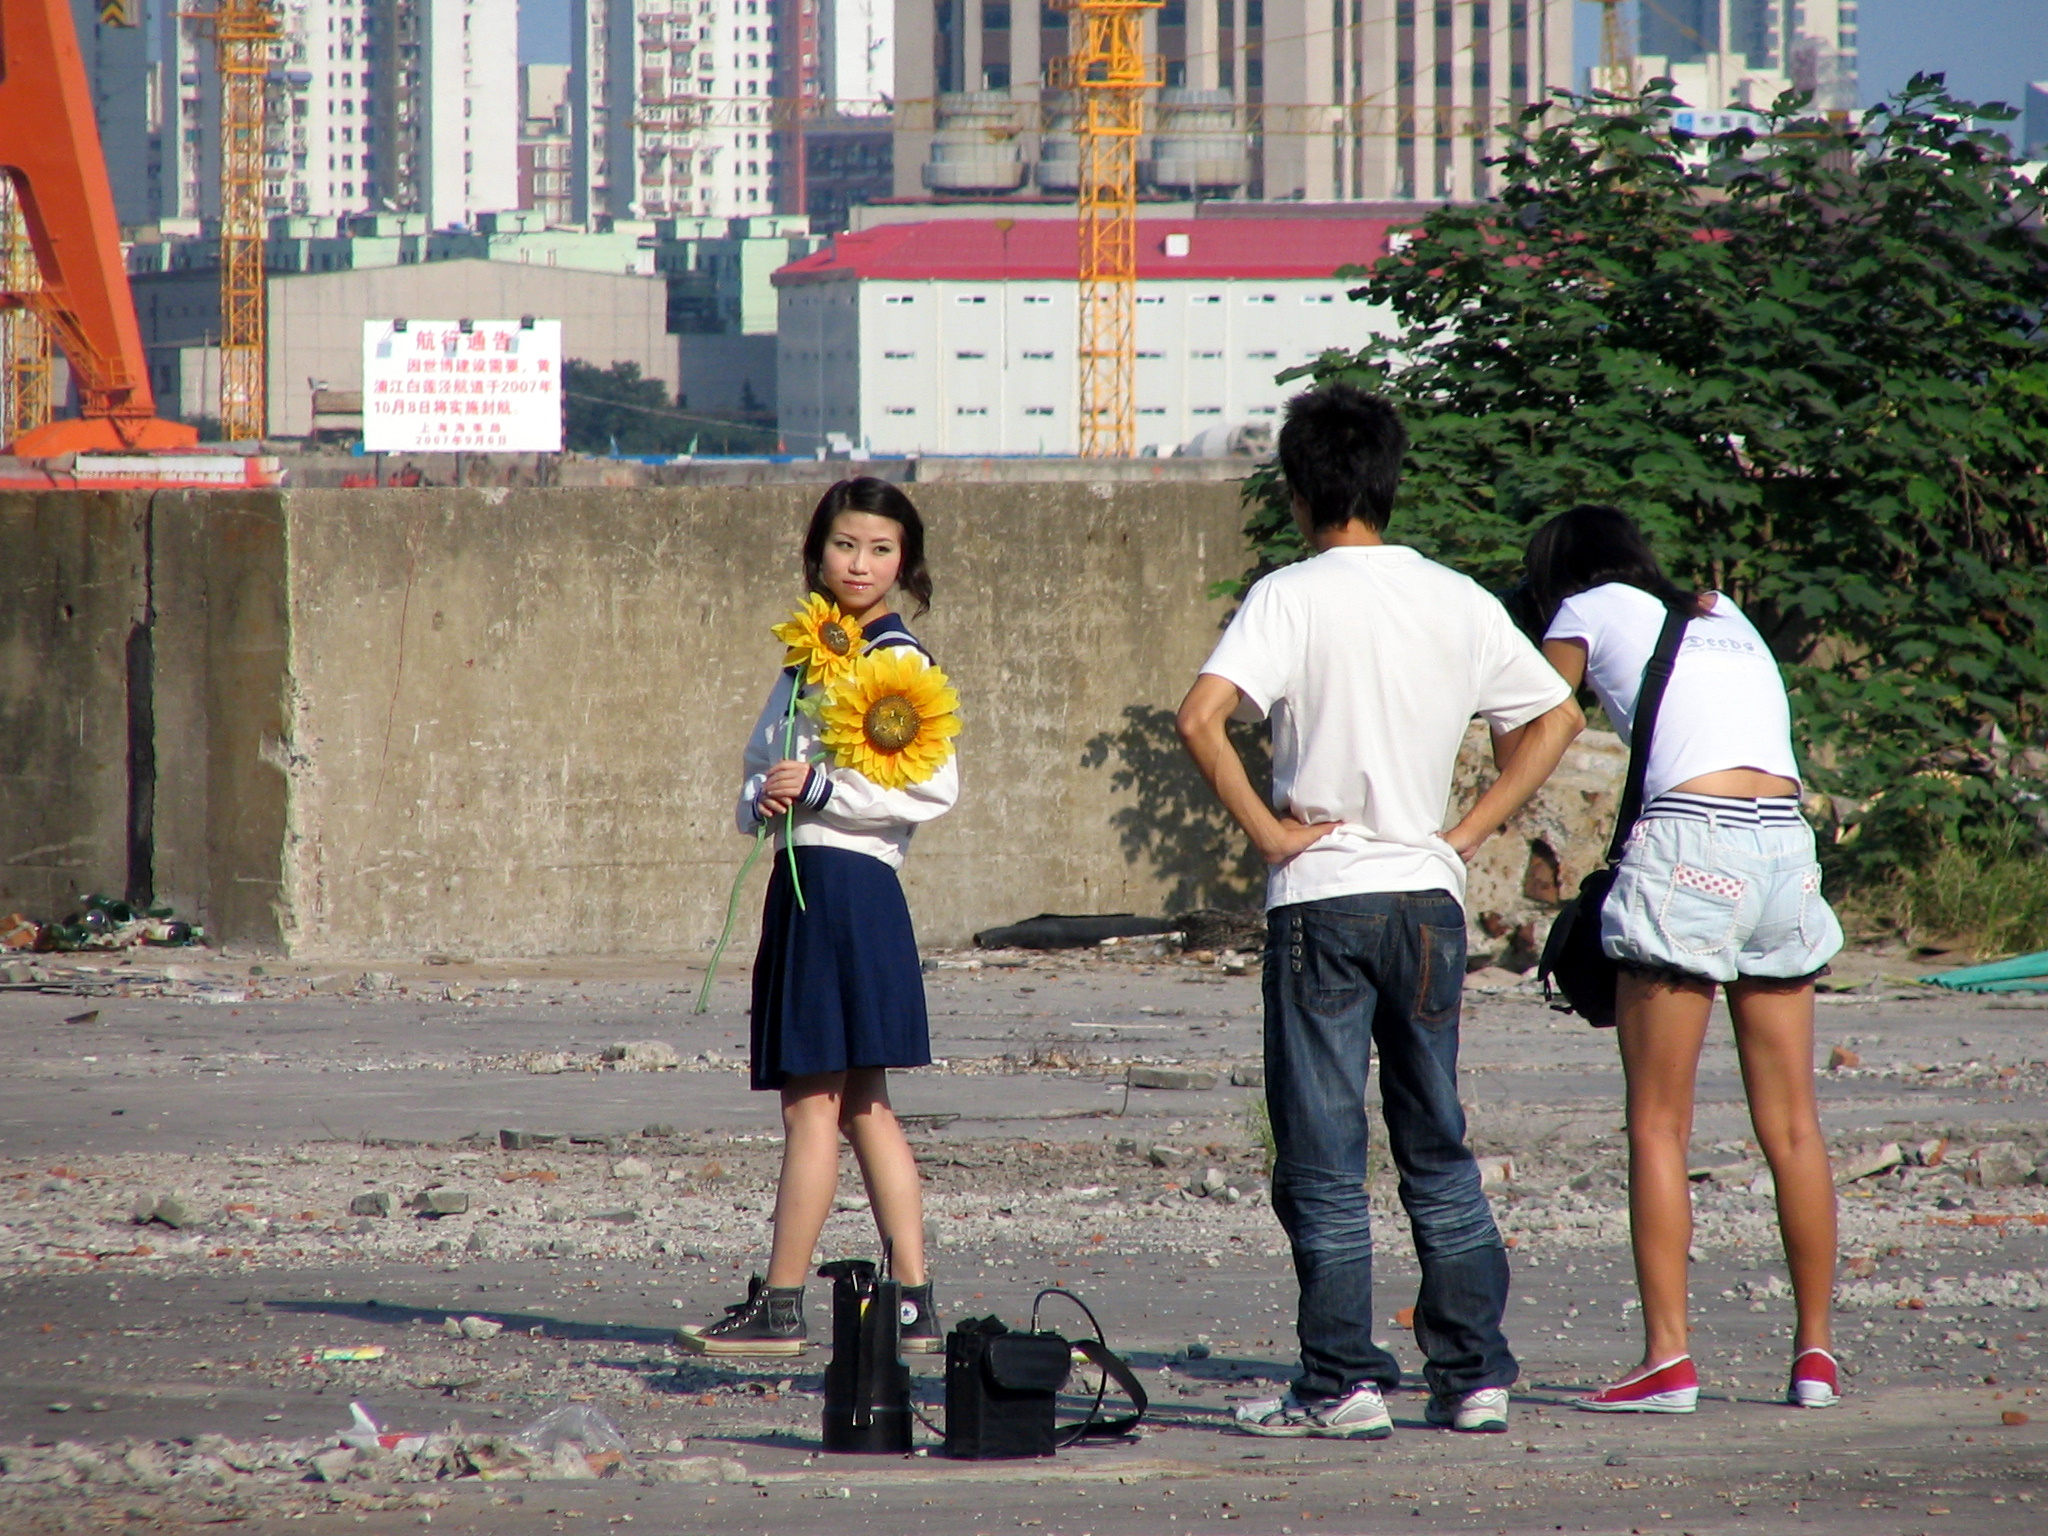 Shanghai vacant lot   Photo by David Perry